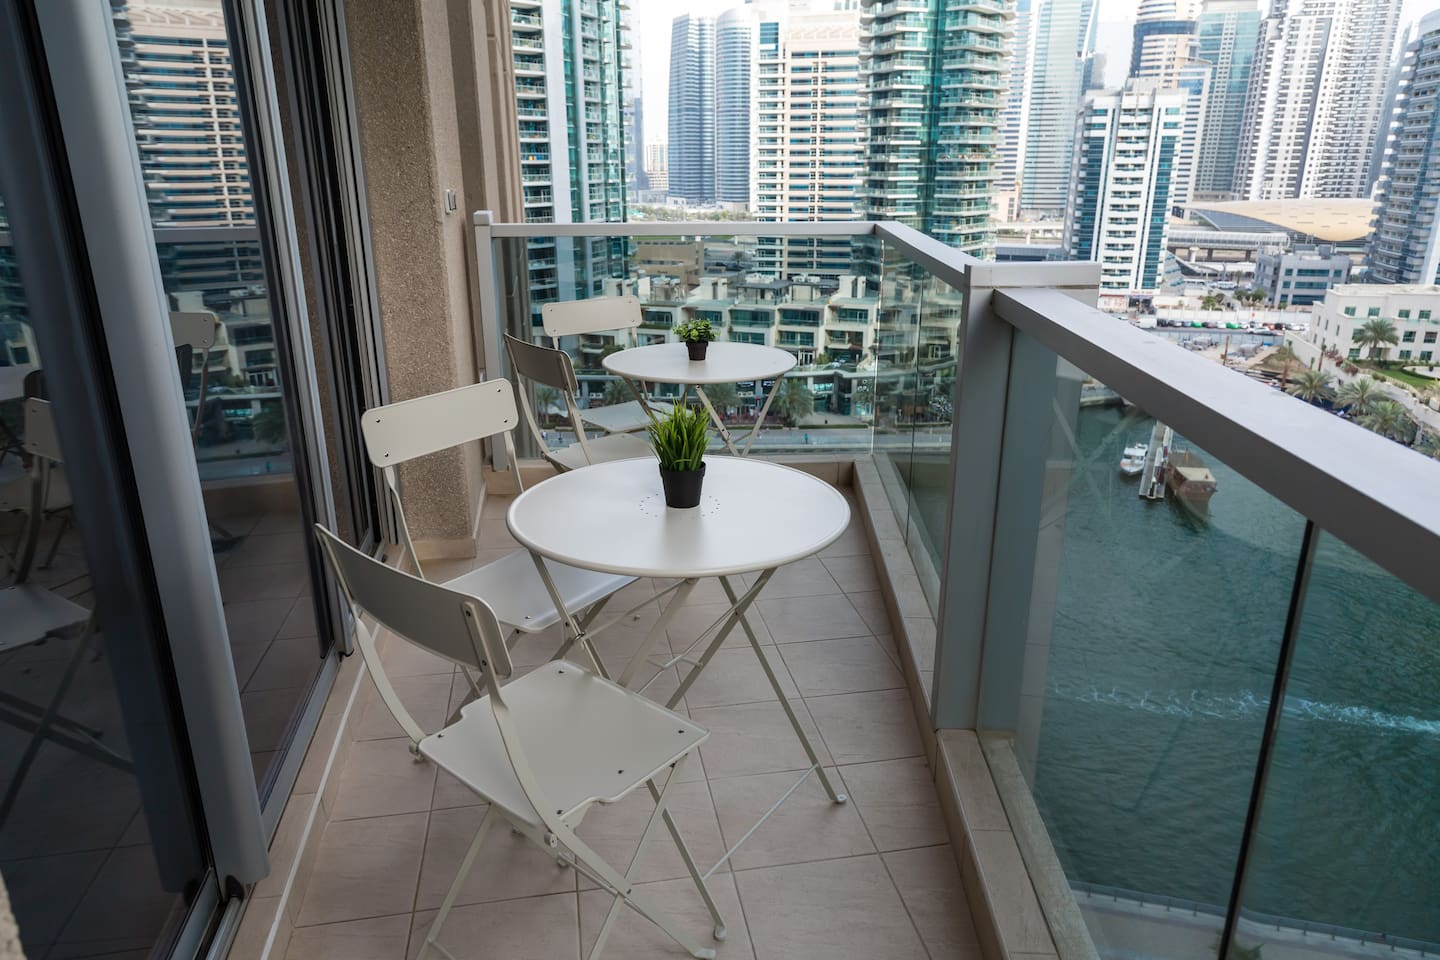 Seating area for 4 guests in balcony